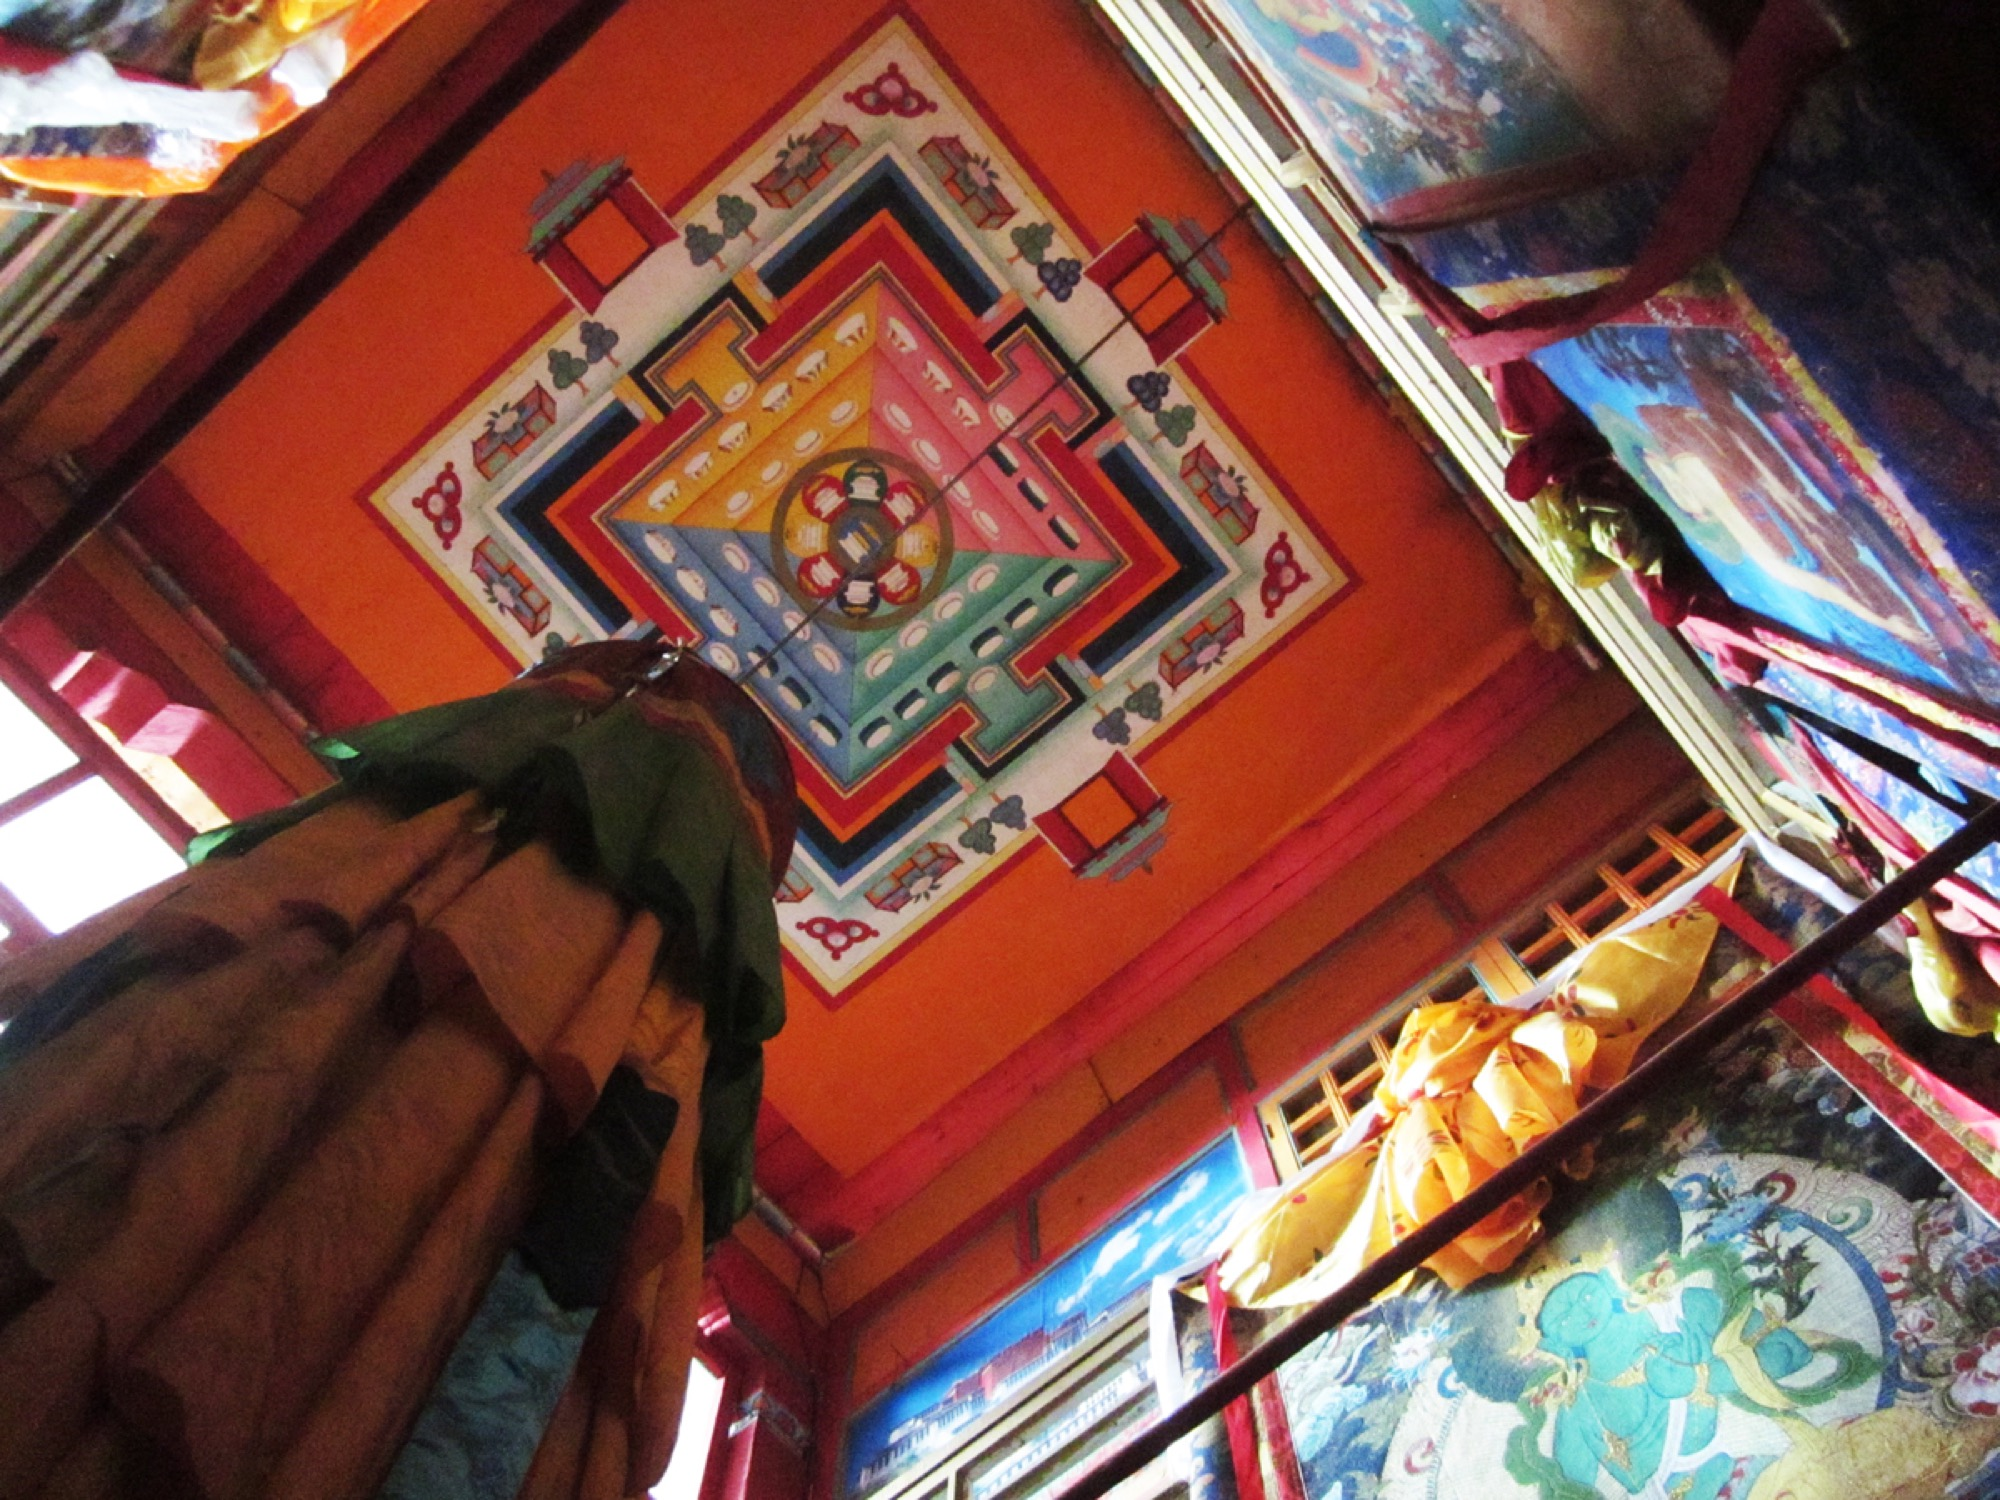 Photostory: Tibet, Towards the Roof of the World, by Arghya Ghosh 47